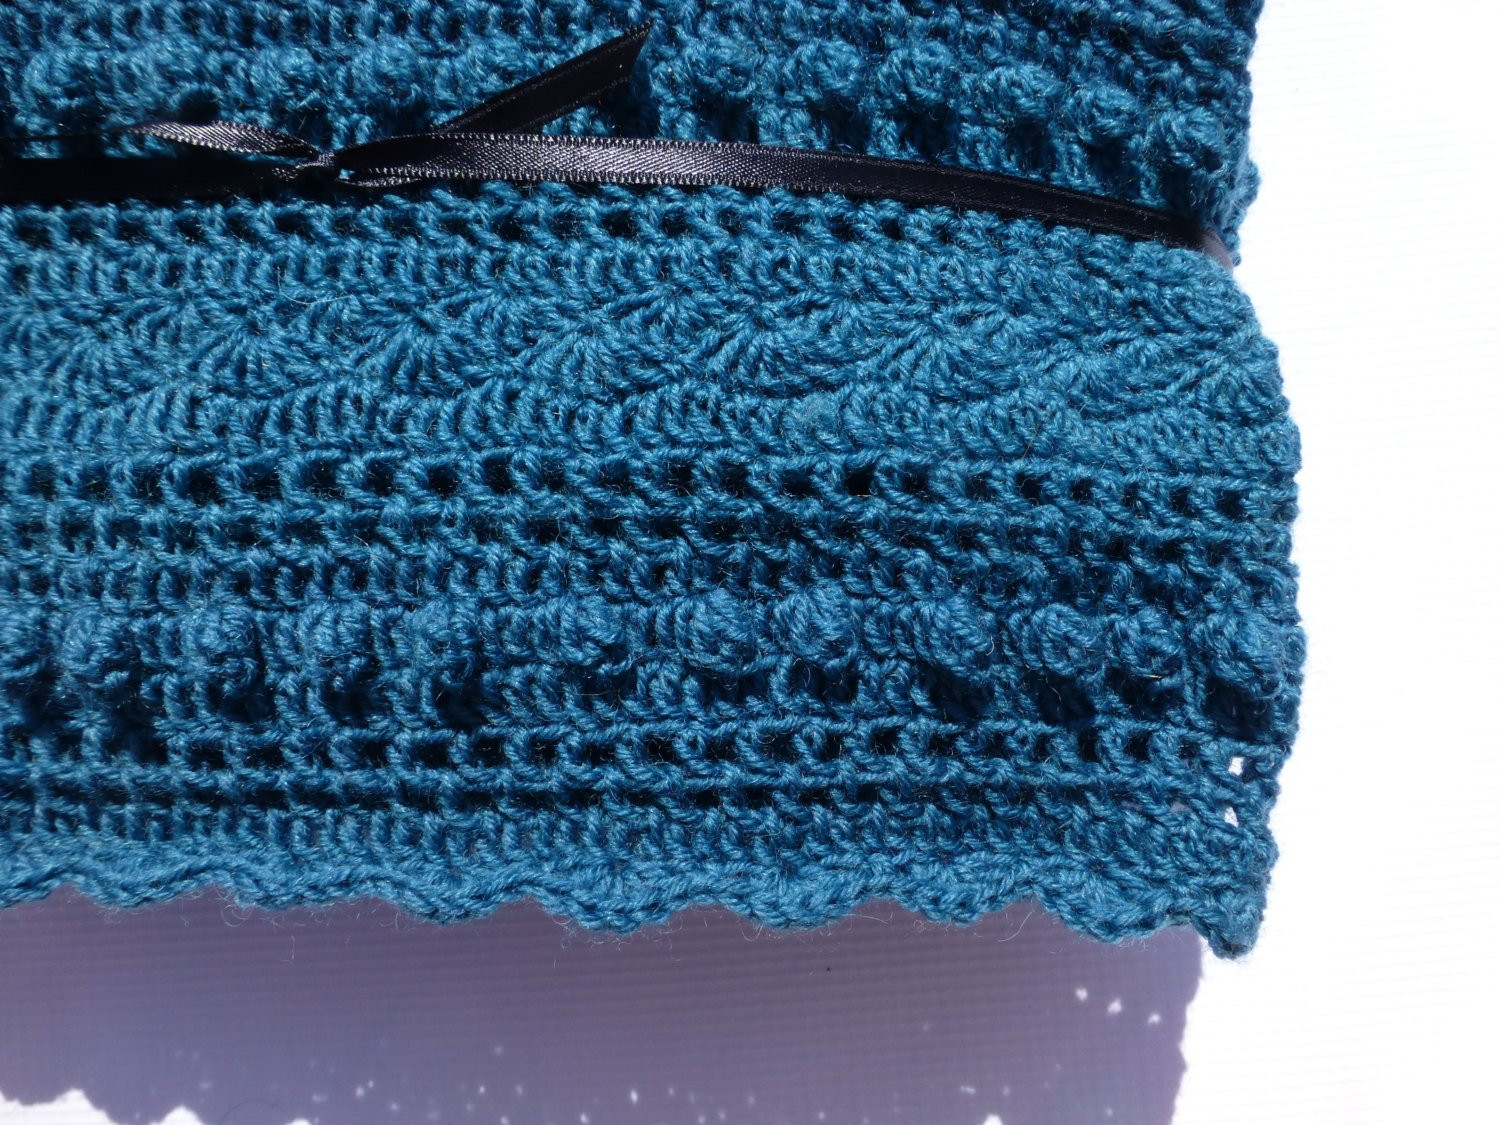 Awesome Lacy Teal Baby Blanket Hand Crocheted Lace Blanket by Babydear Lace Blanket Of Great 41 Ideas Lace Blanket